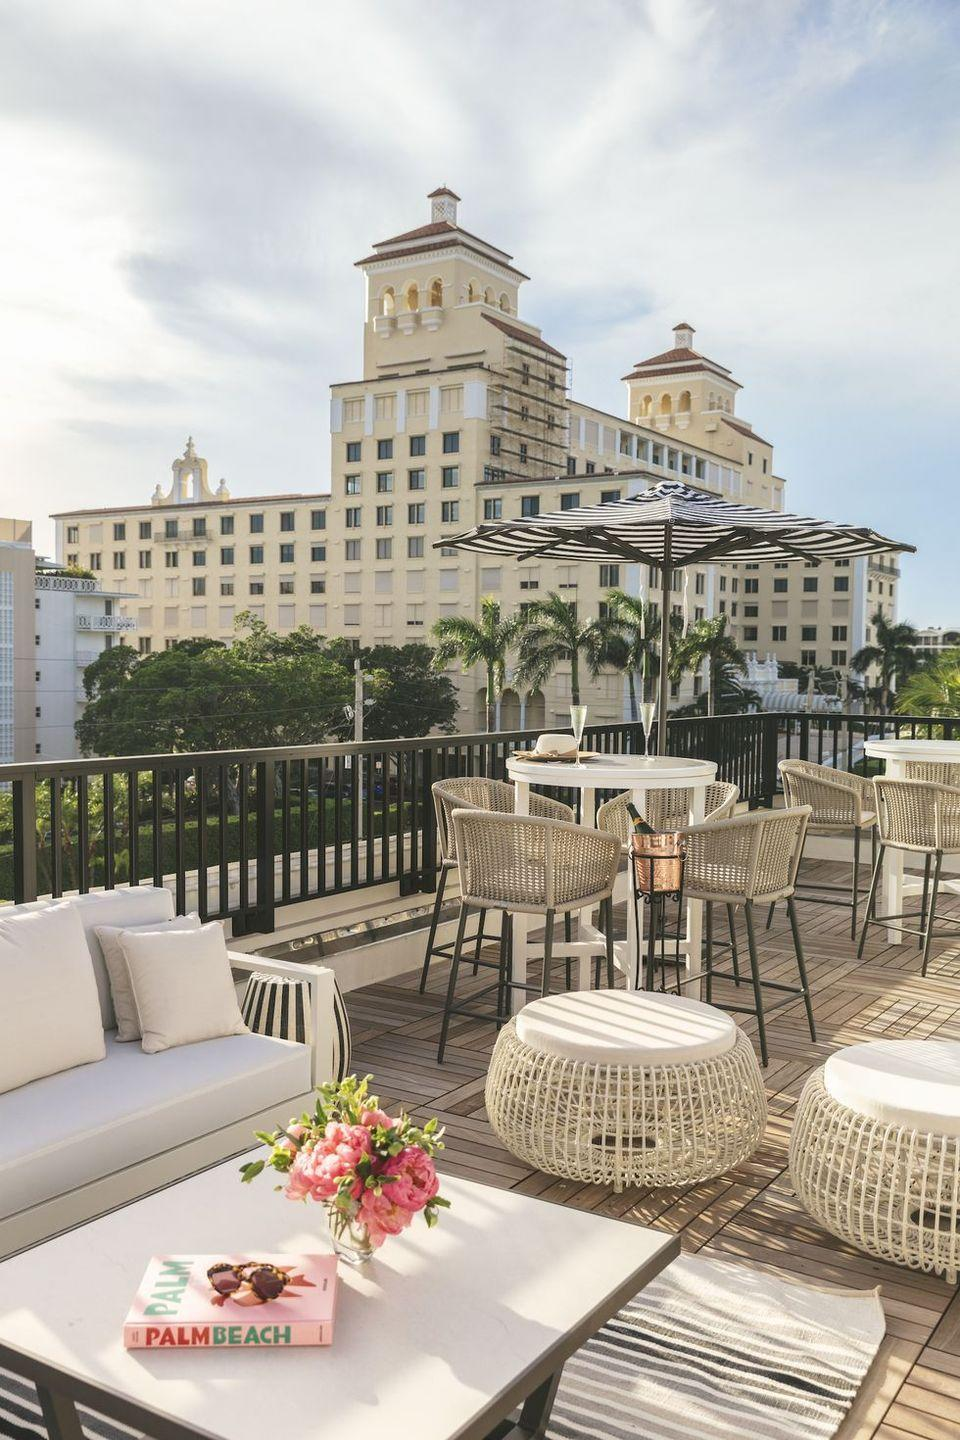 """<p>Lovers of the namesake Nantucket hotel will be thrilled to discover the White Elephant now has a second location in the heart of Palm Beach. <a href=""""https://www.whiteelephantpalmbeach.com/"""" rel=""""nofollow noopener"""" target=""""_blank"""" data-ylk=""""slk:White Elephant Palm Beach"""" class=""""link rapid-noclick-resp"""">White Elephant Palm Beach</a> offers the best of Palm Beach living in a 1924 building that has undergone a five-star renovation and features a lush outdoor pool and courtyard, a buzzy rooftop bar, and plenty of exciting activities to make the most of your South Florida vacation. Plus, the property houses another Nantucket favorite in LoLa 41, a chic sushi restaurant, and cocktail bar. </p>"""